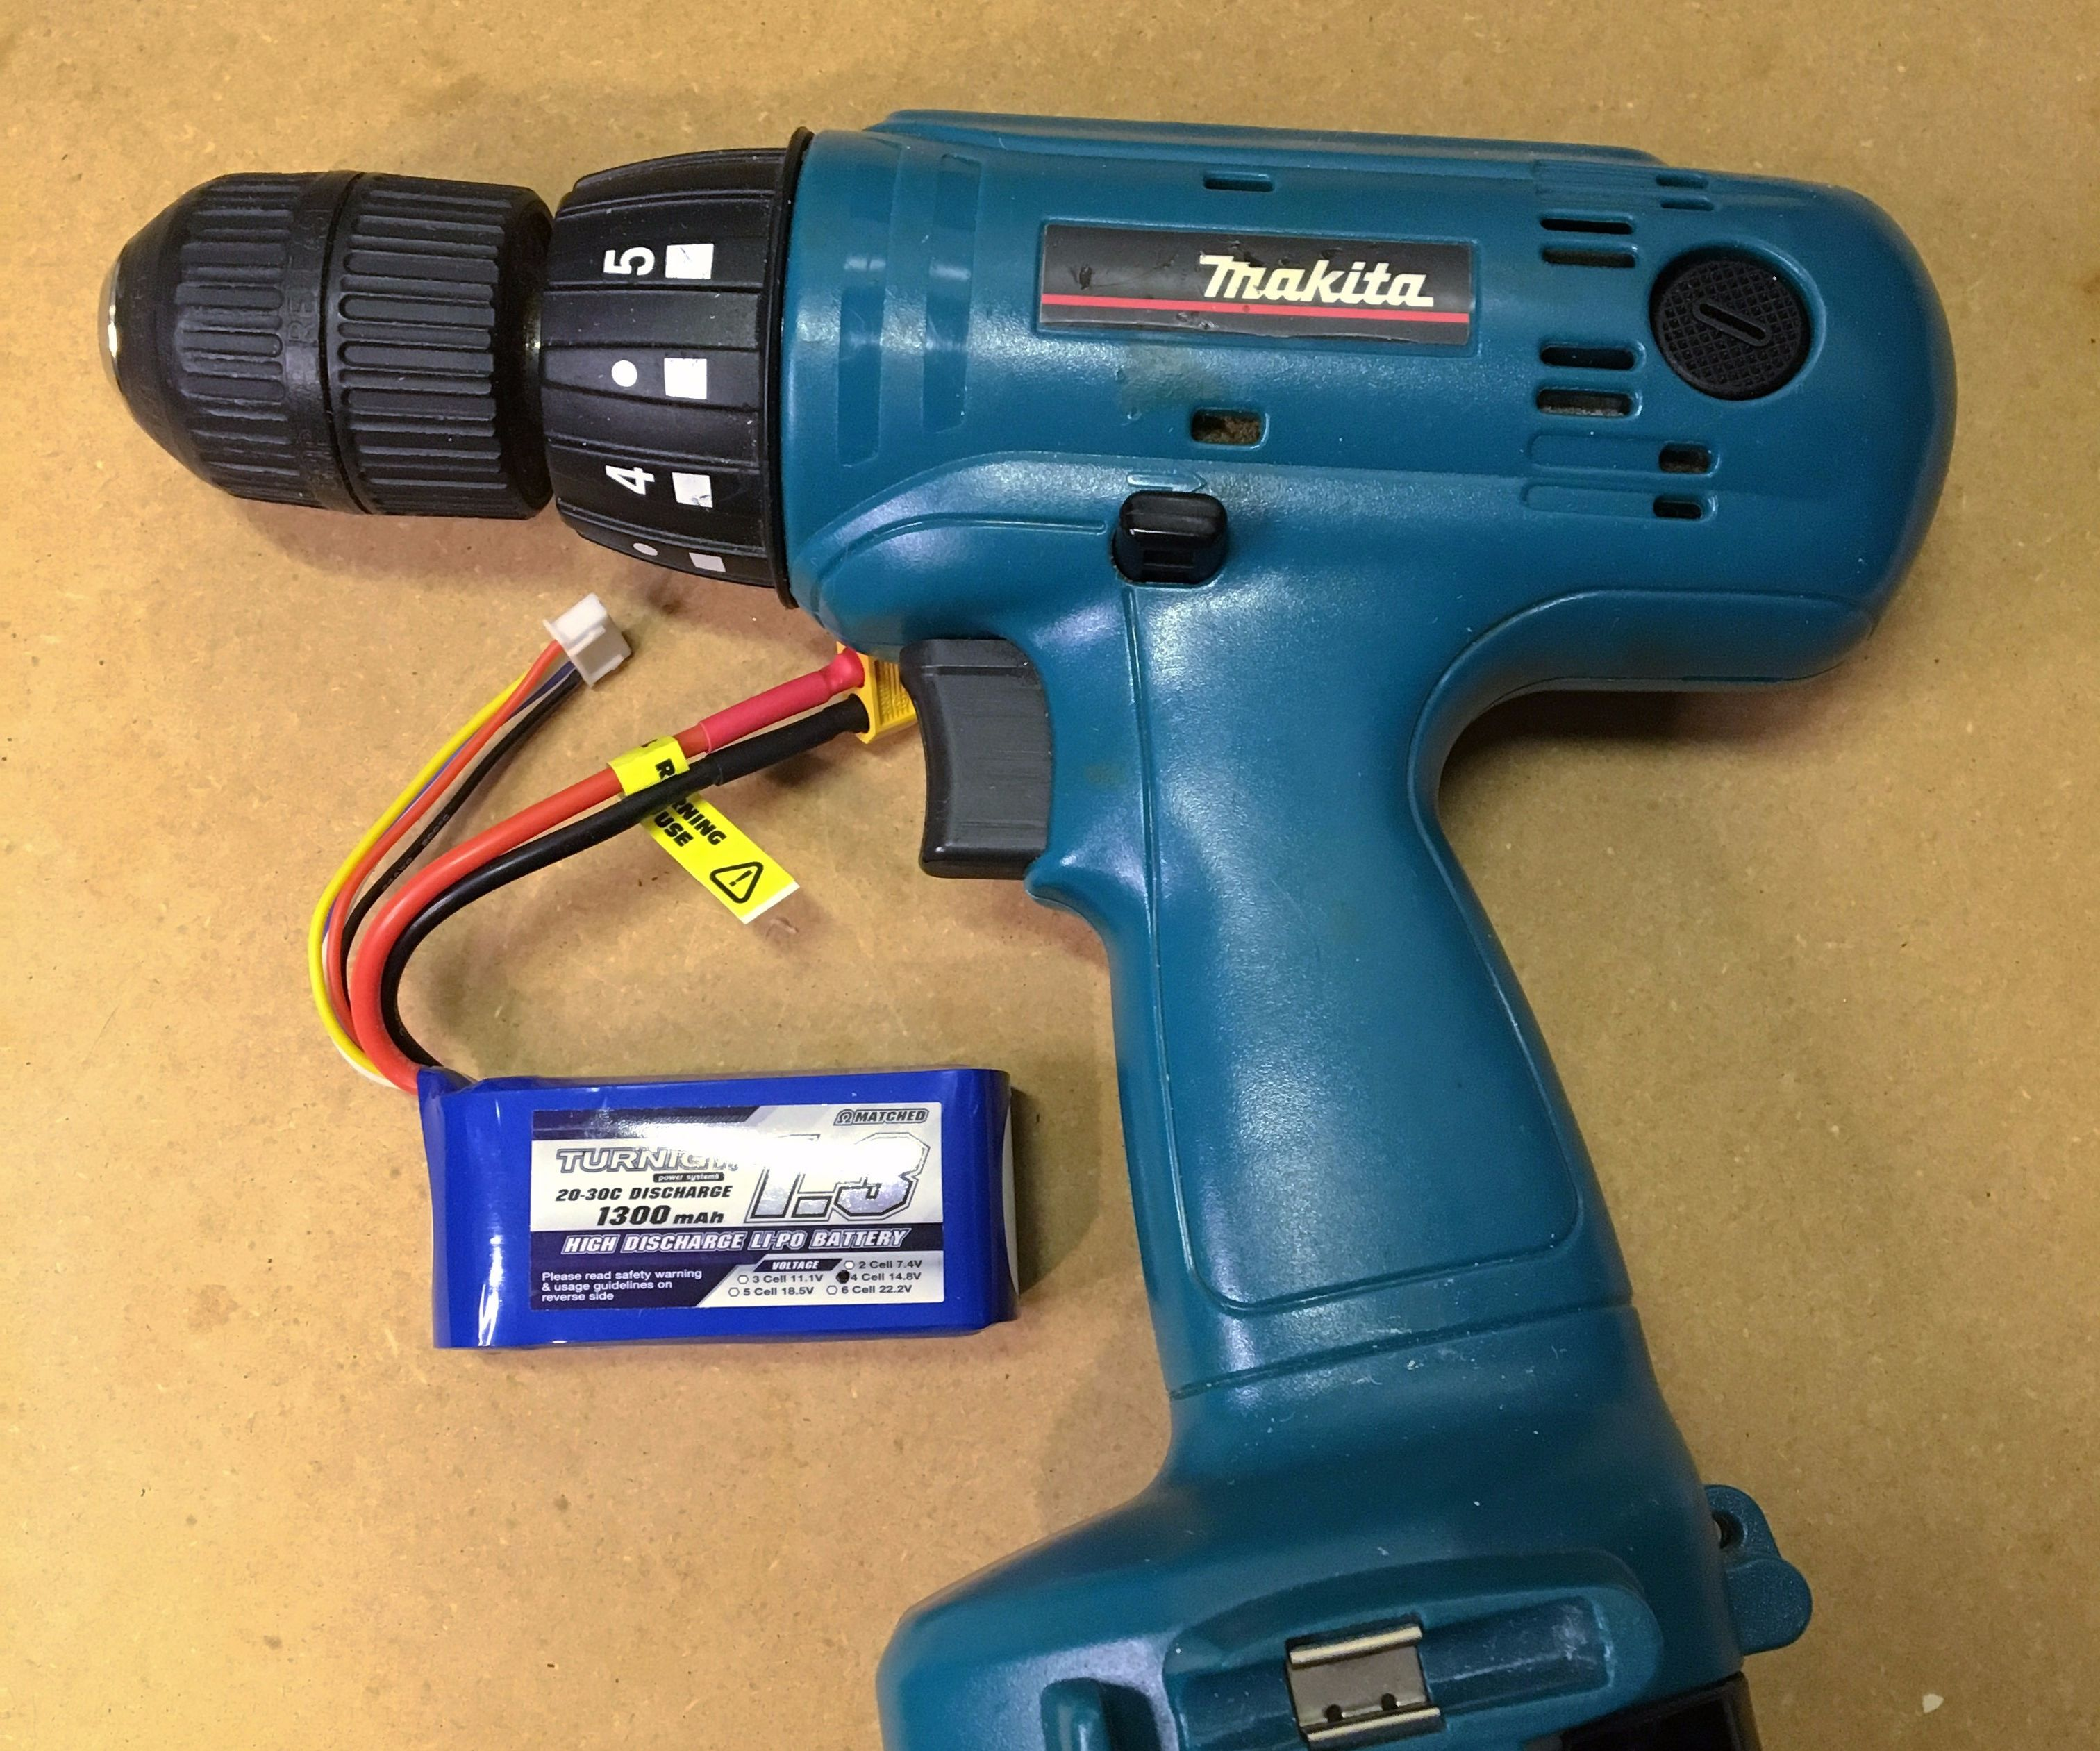 convert old cordless tools to lithium power 5 steps (with pictures)Liion Rechargeable Power Tool Battery With Short Circuit Production #13